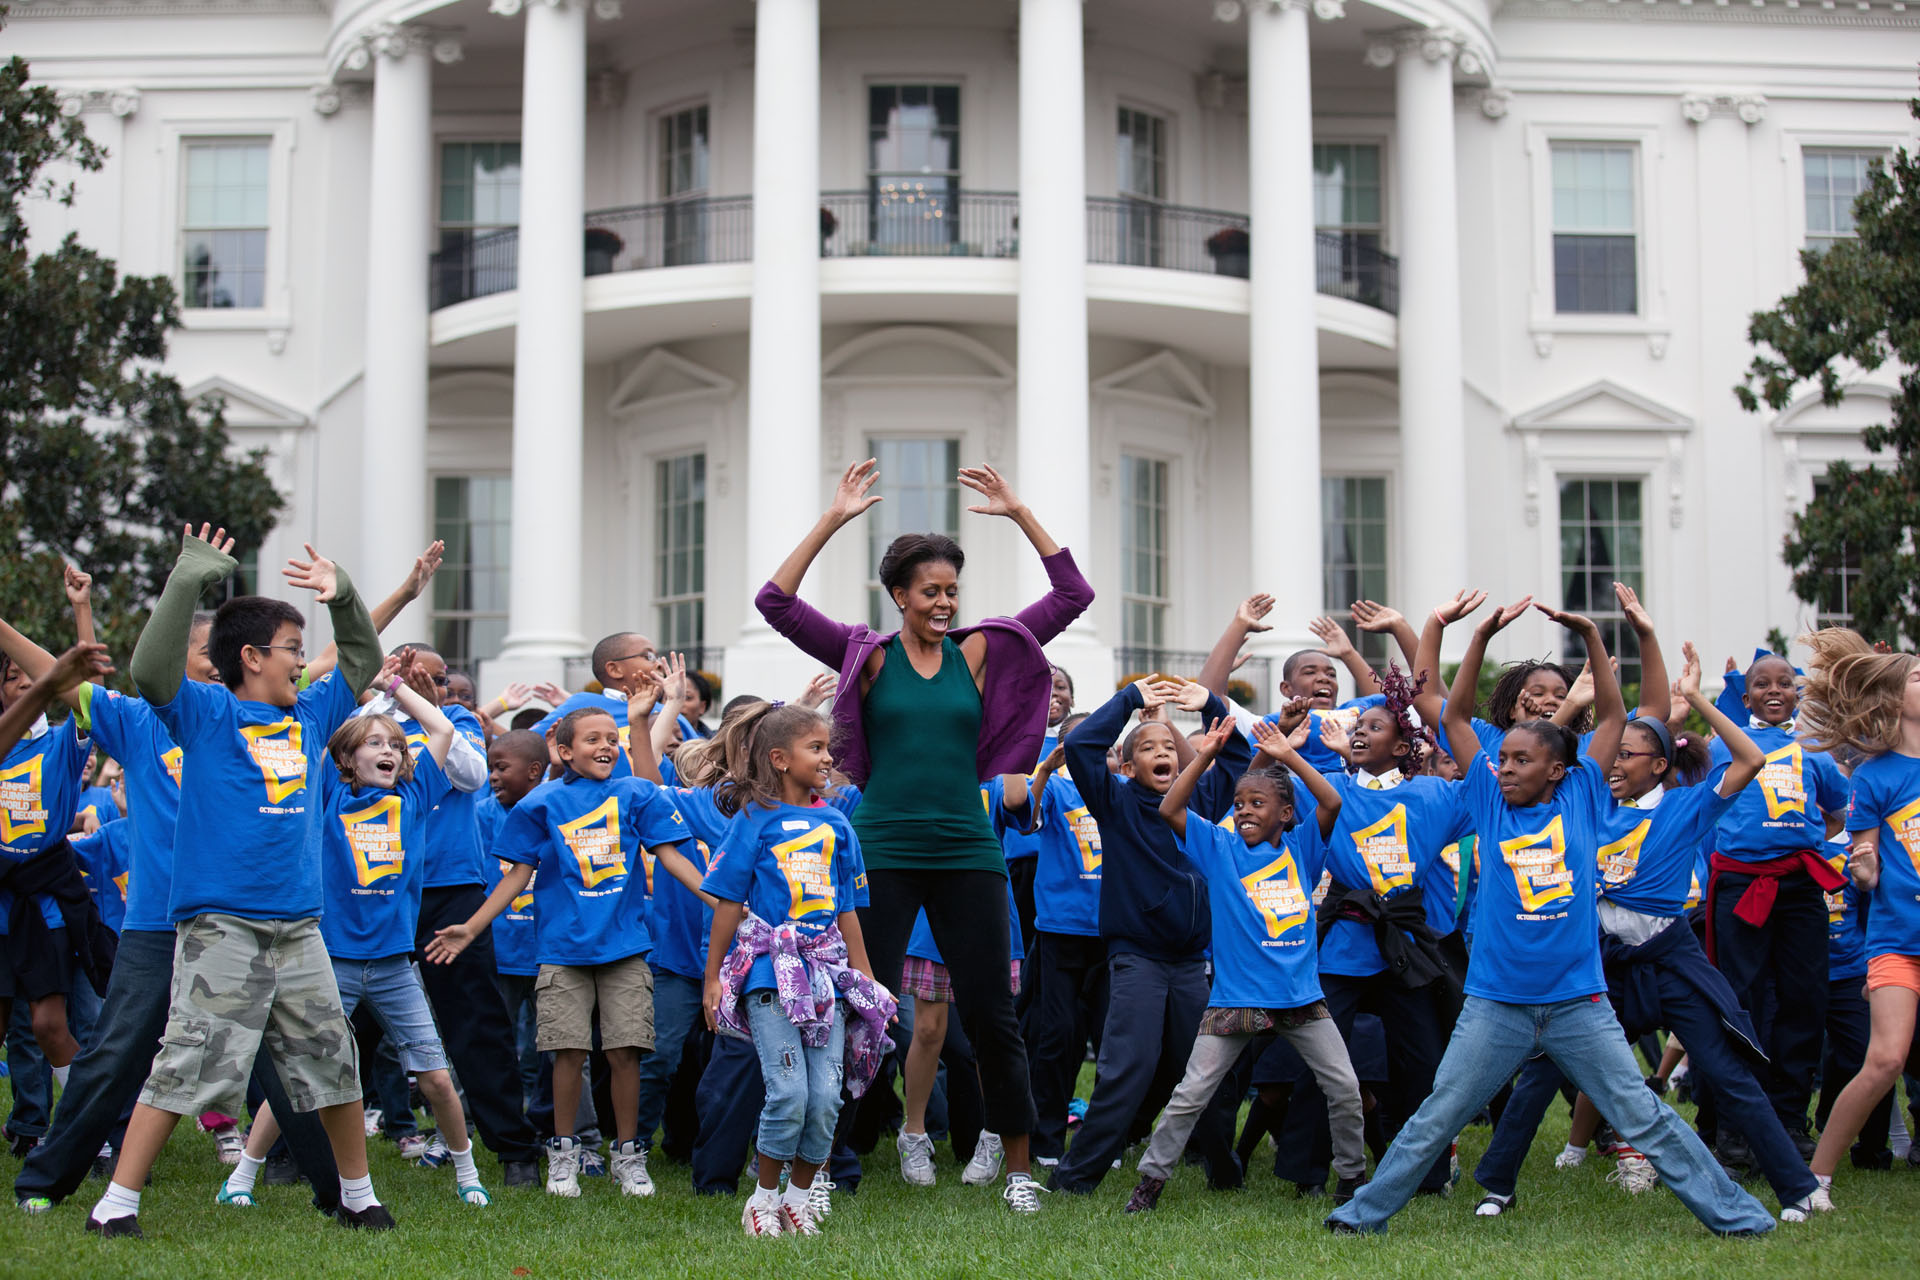 First Lady Michelle Obama leads Jumping Jacks to help break the Guinness Record